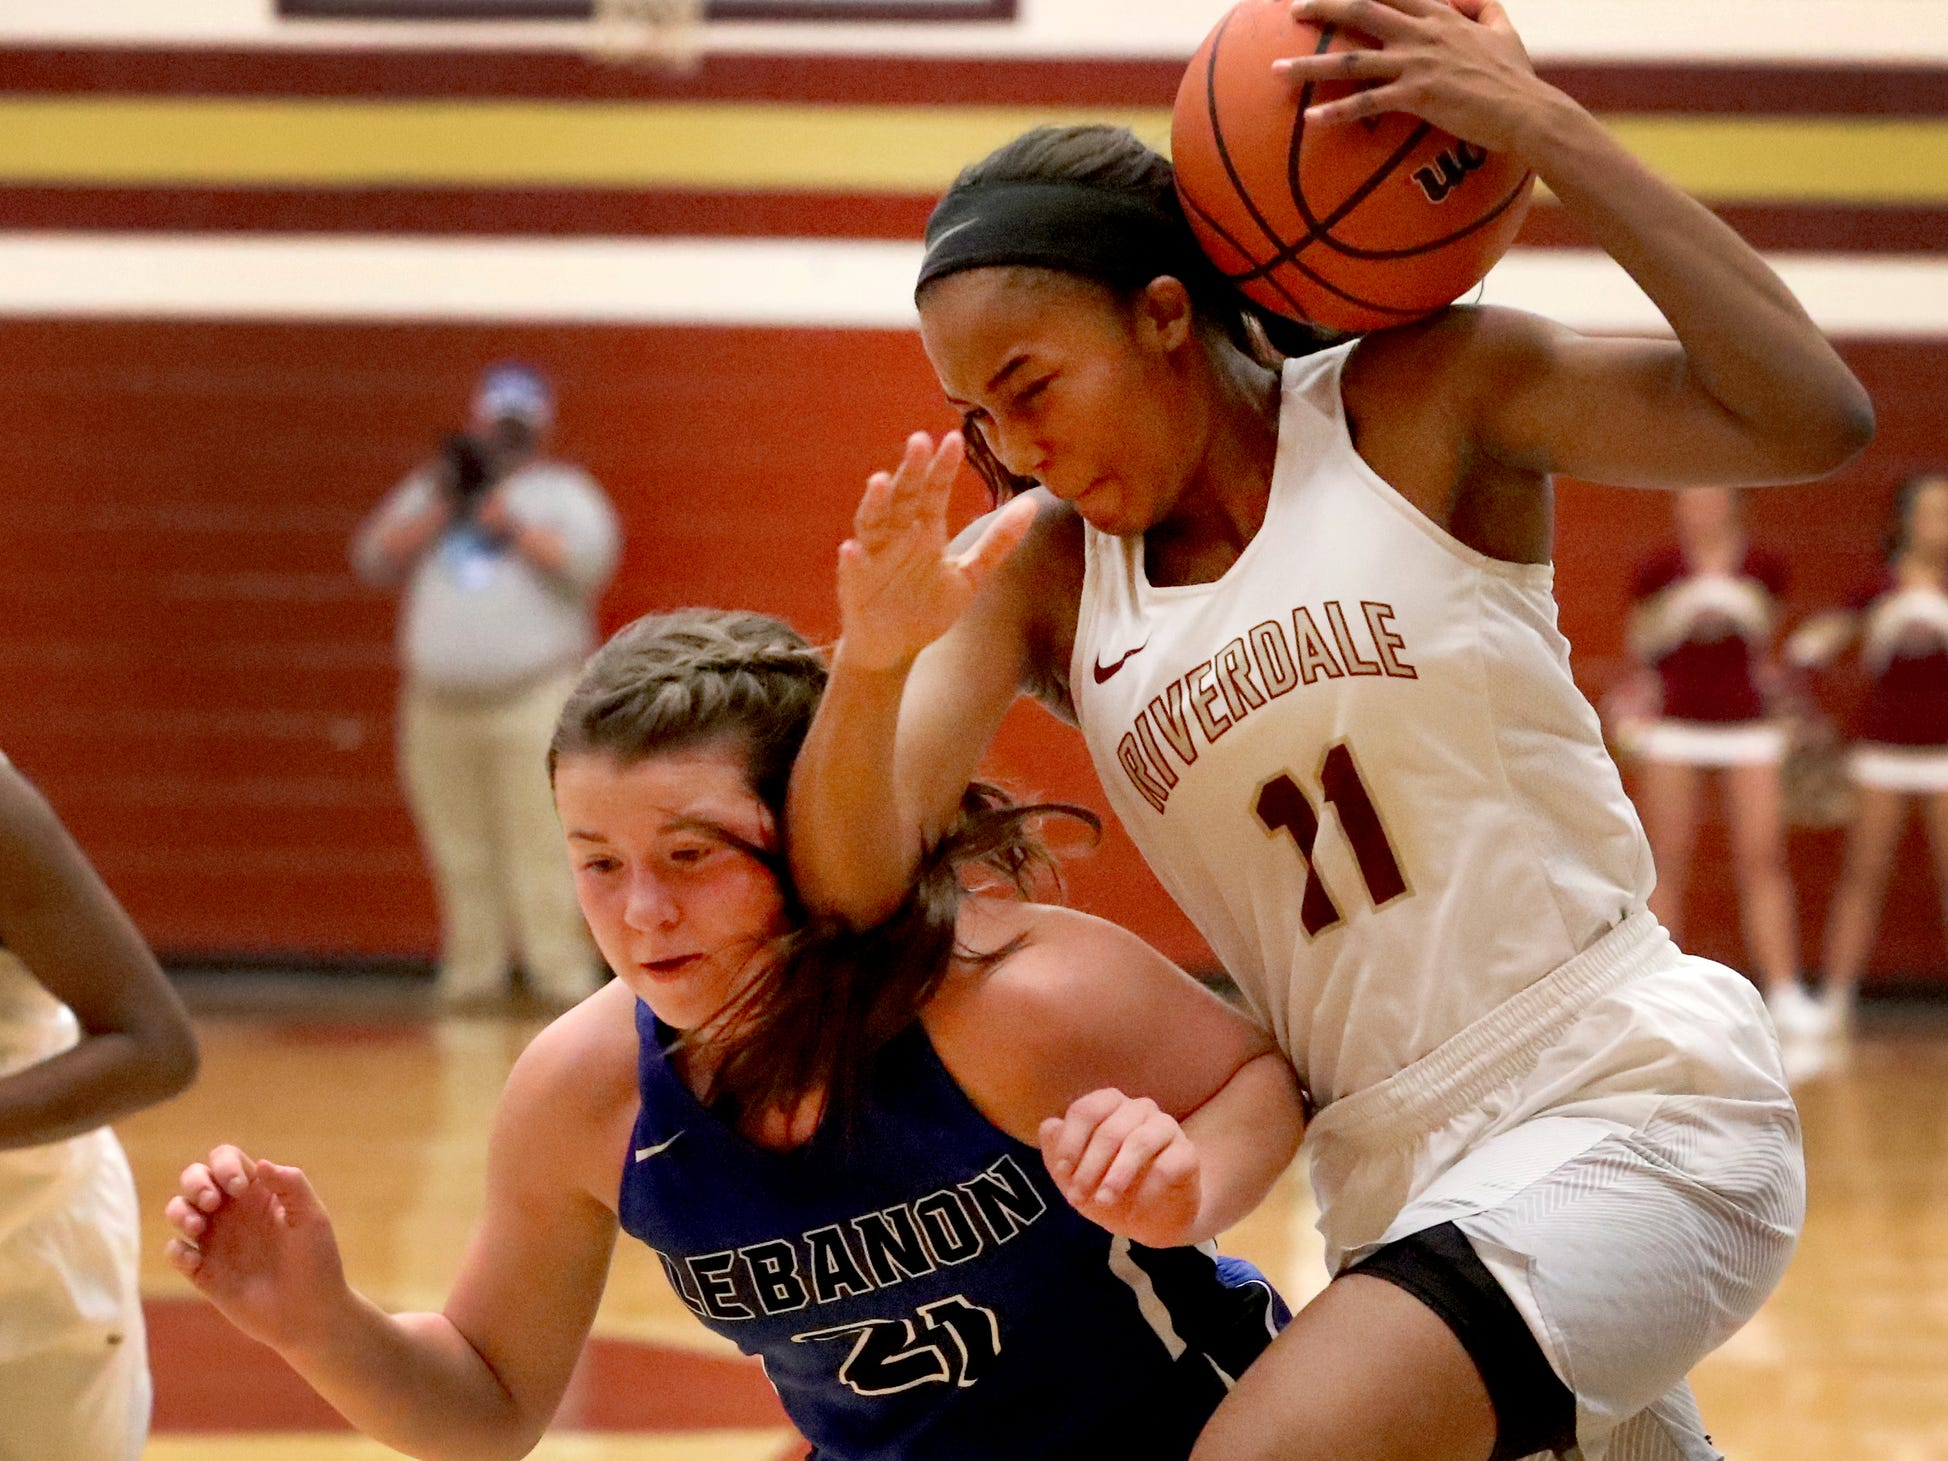 RiverdaleÕs Aislynn Hayes (11) drives for the basket as LebanonÕs  Addie Porter (21) guards her during the game at Riverdale on Friday, Nov. 30, 2018.